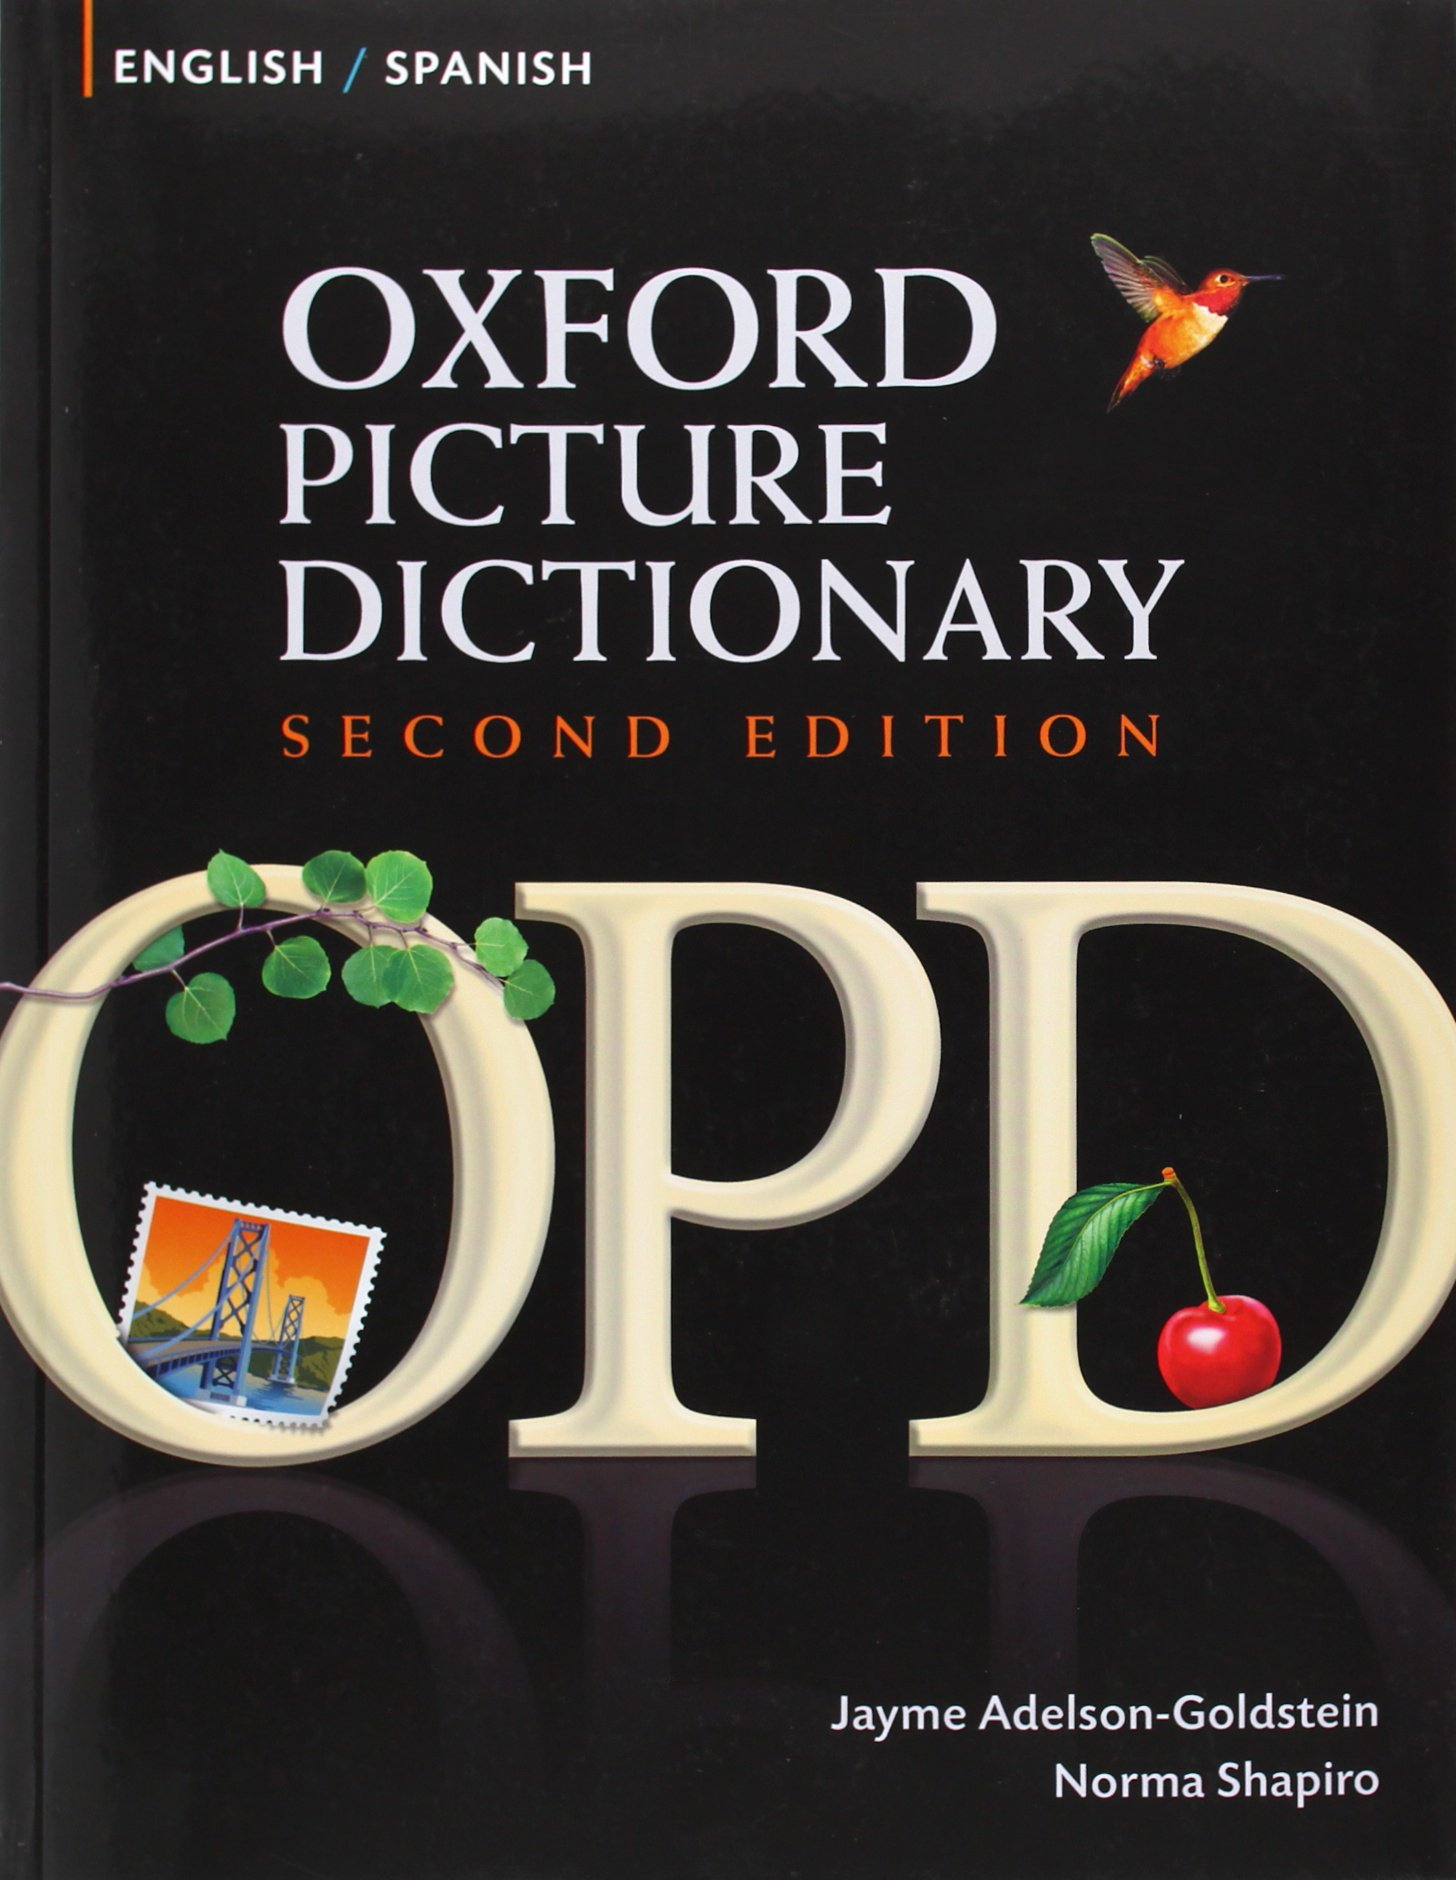 Amazon.com: Oxford Picture Dictionary English-Spanish: Bilingual ...